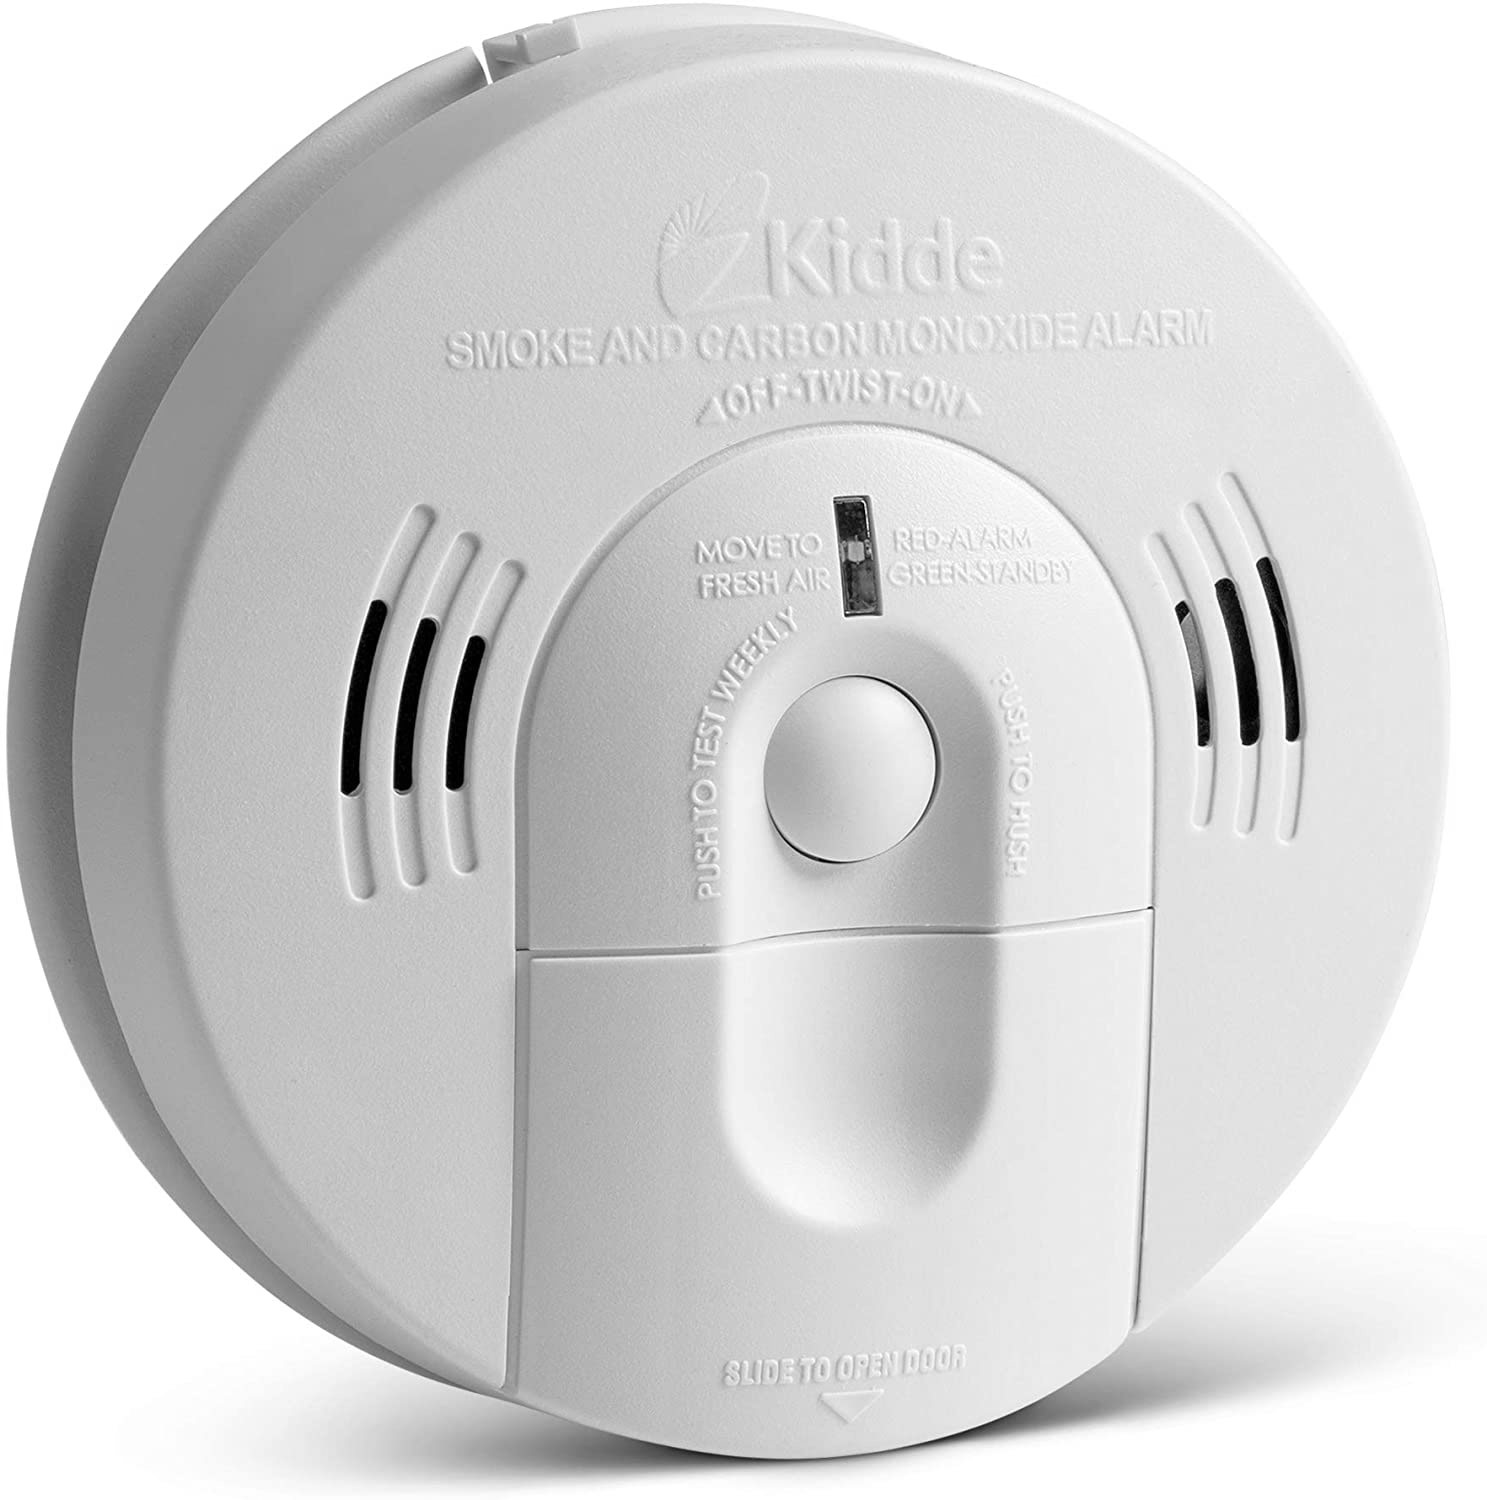 Kidde Talking Smoke, Fire and Carbon Monoxide Alarm